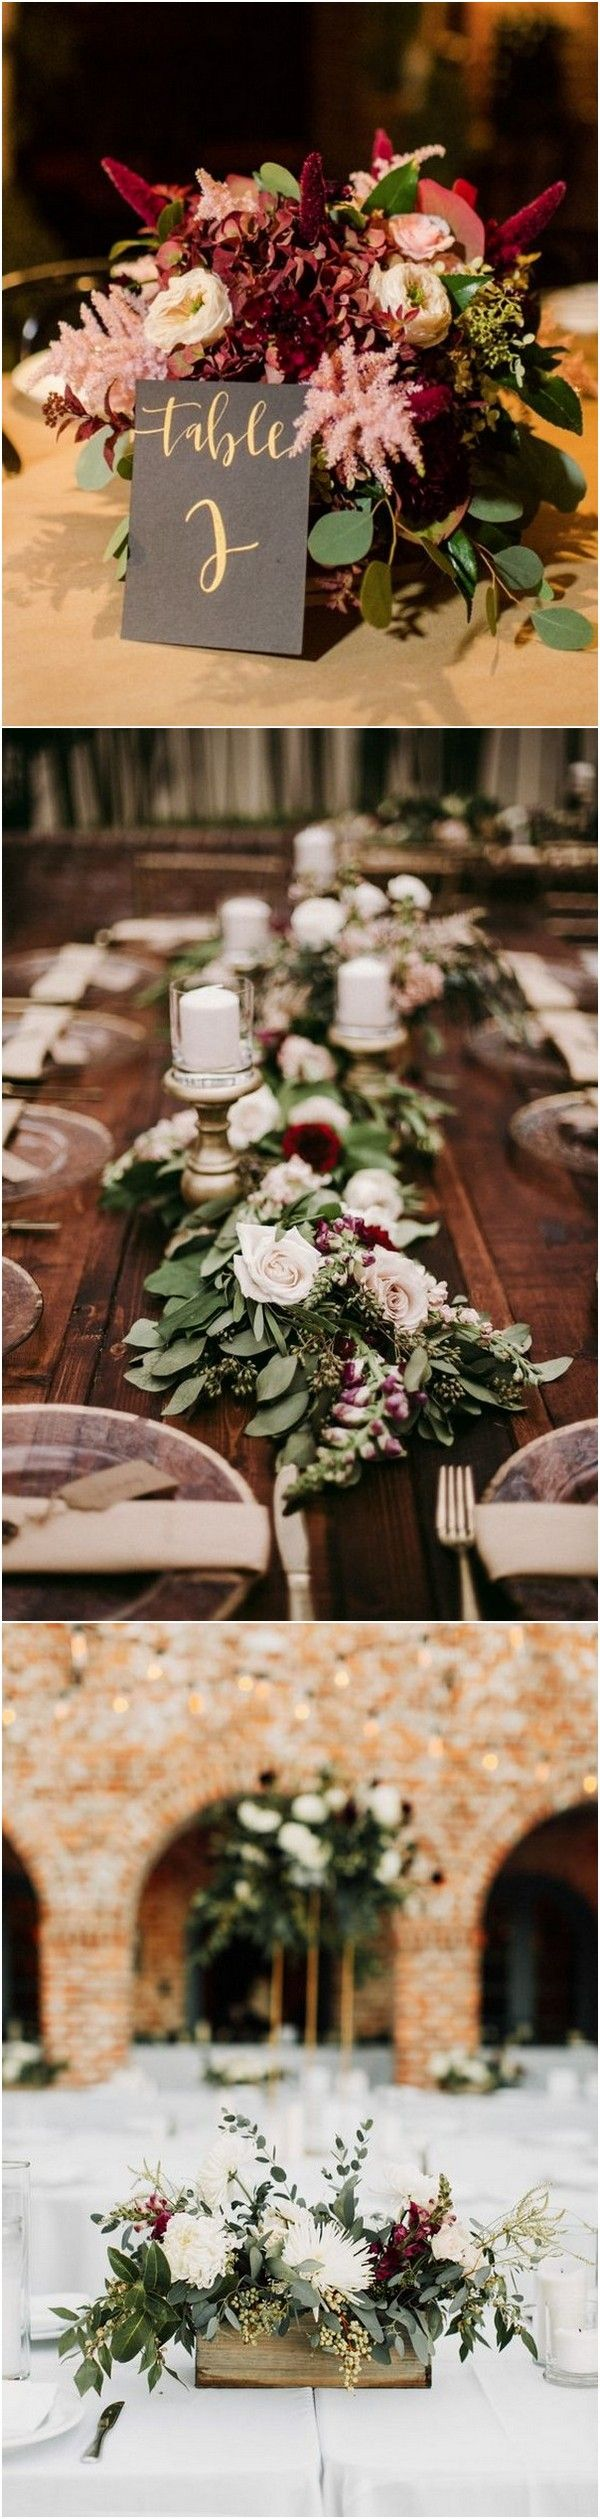 Wedding decorations rustic october 2018 Top  Burgundy Wedding Centerpieces for Fall   Wedding